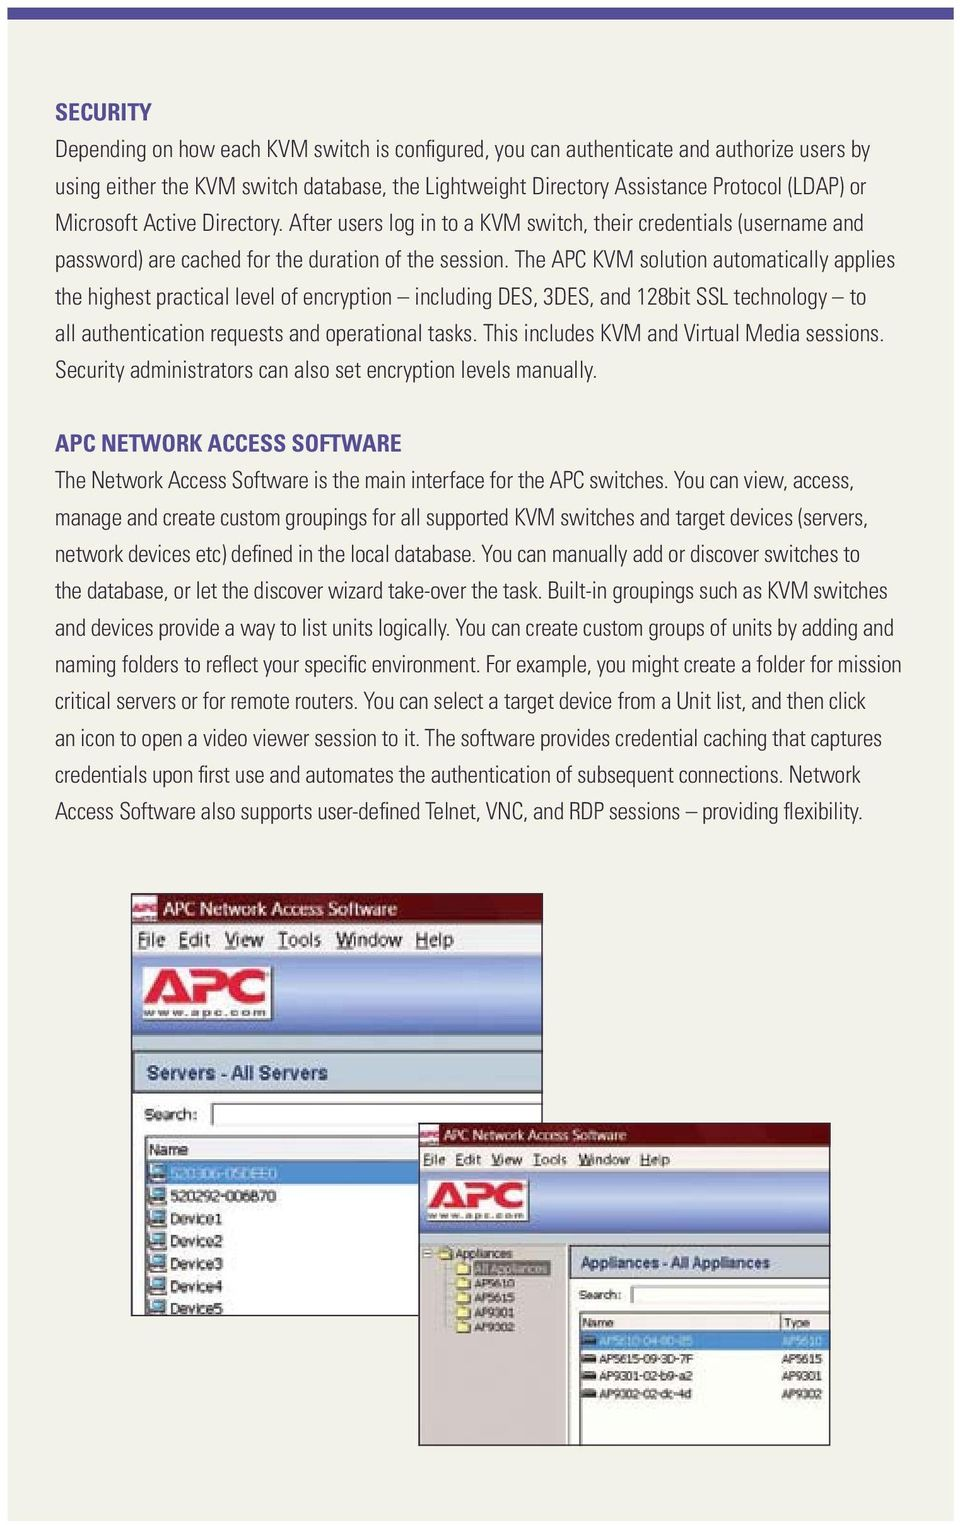 The APC KVM solution automatically applies the highest practical level of encryption including DES, 3DES, and 128bit SSL technology to all authentication requests and operational tasks.